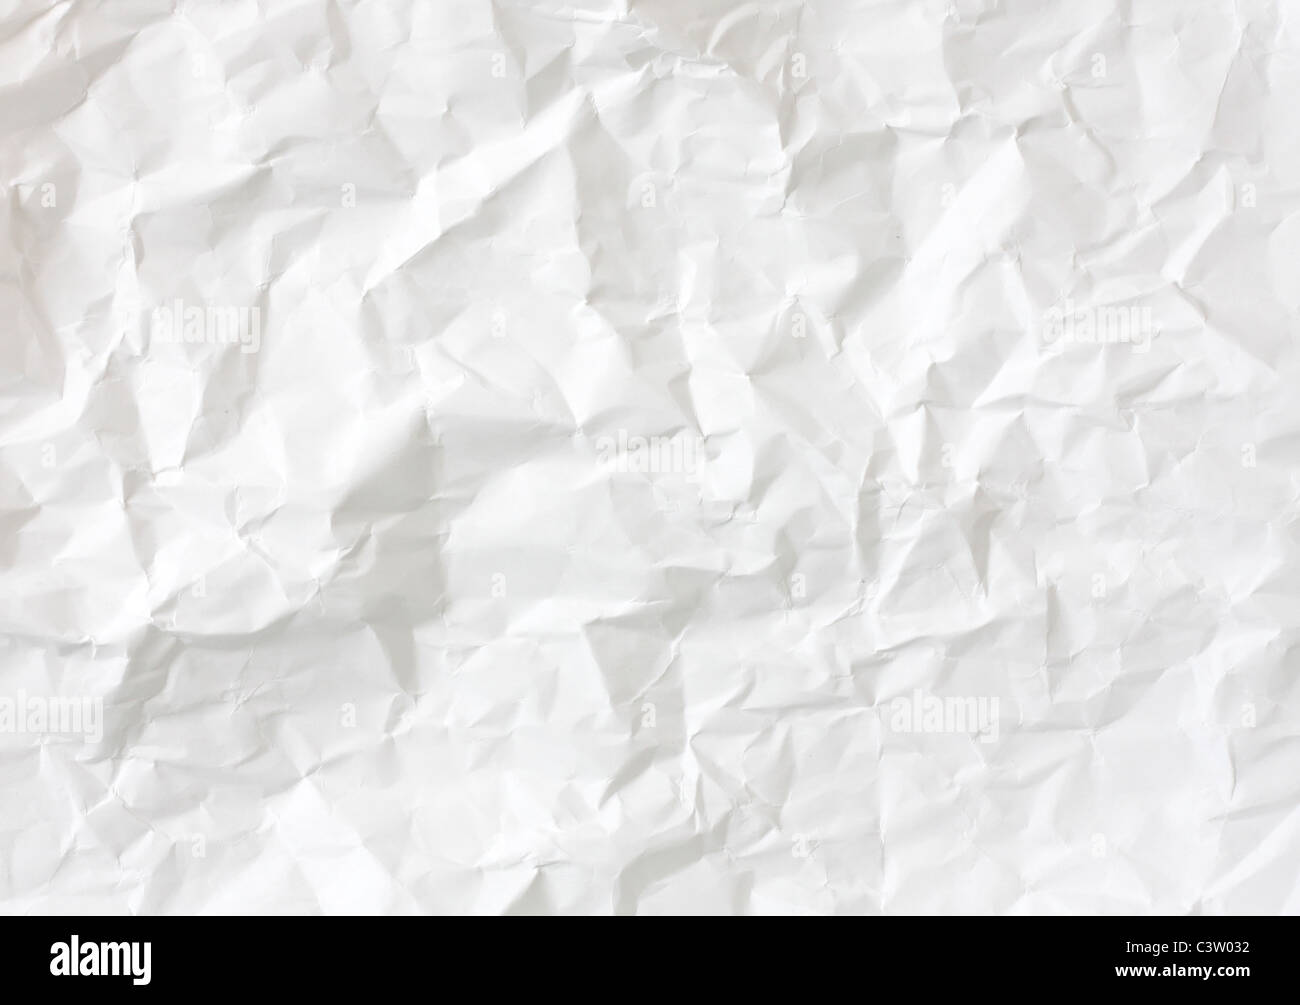 Crumbled paper - Stock Image